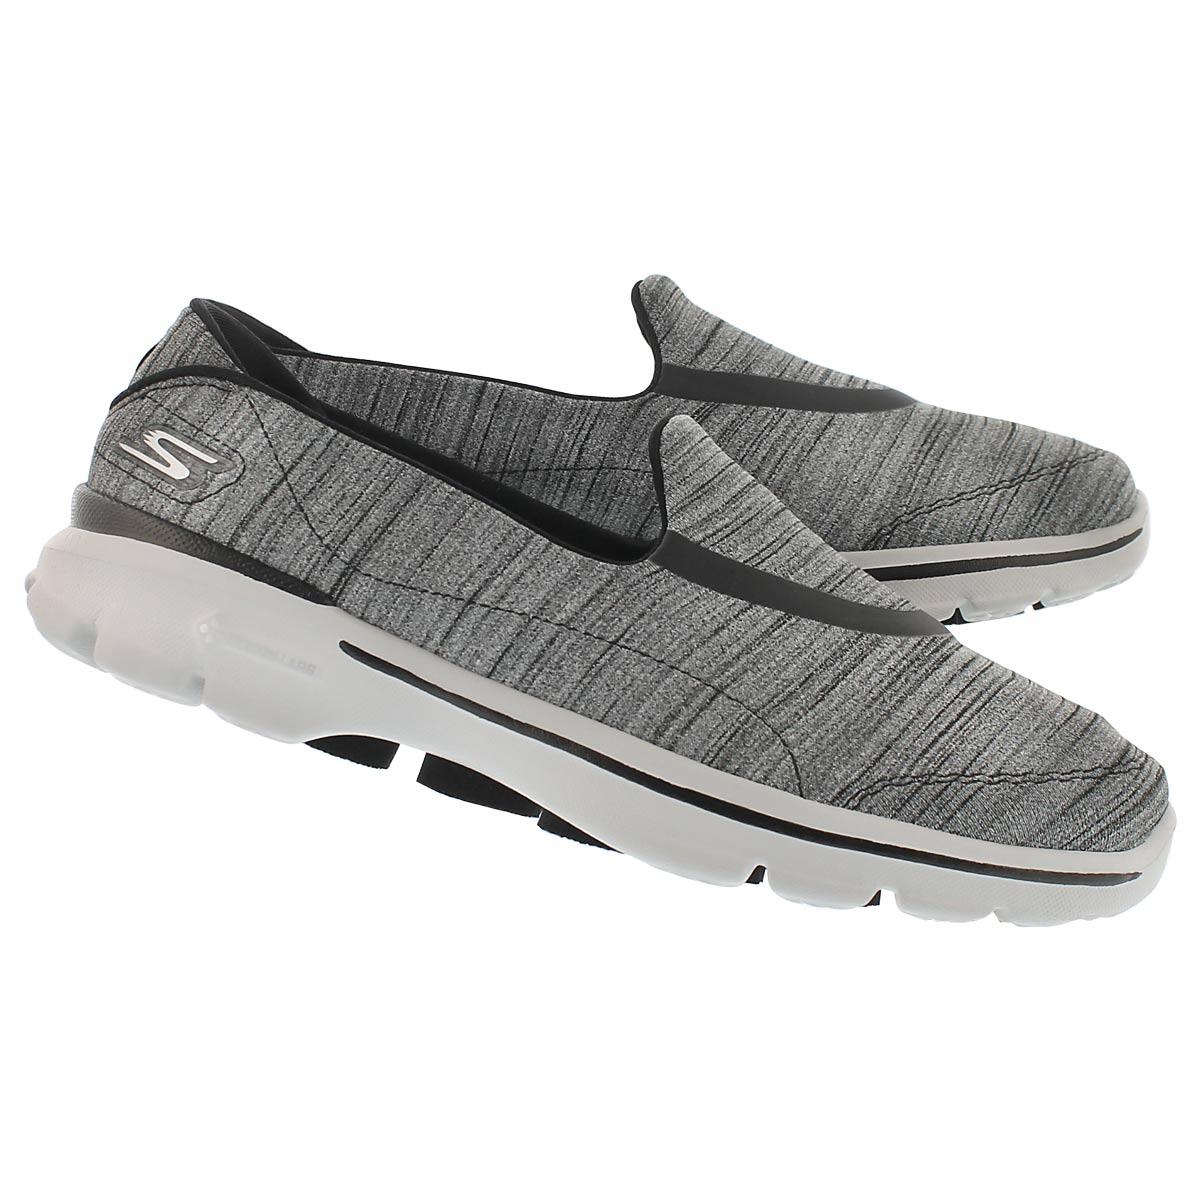 Lds GOwalk 3 blk/gry walking shoe